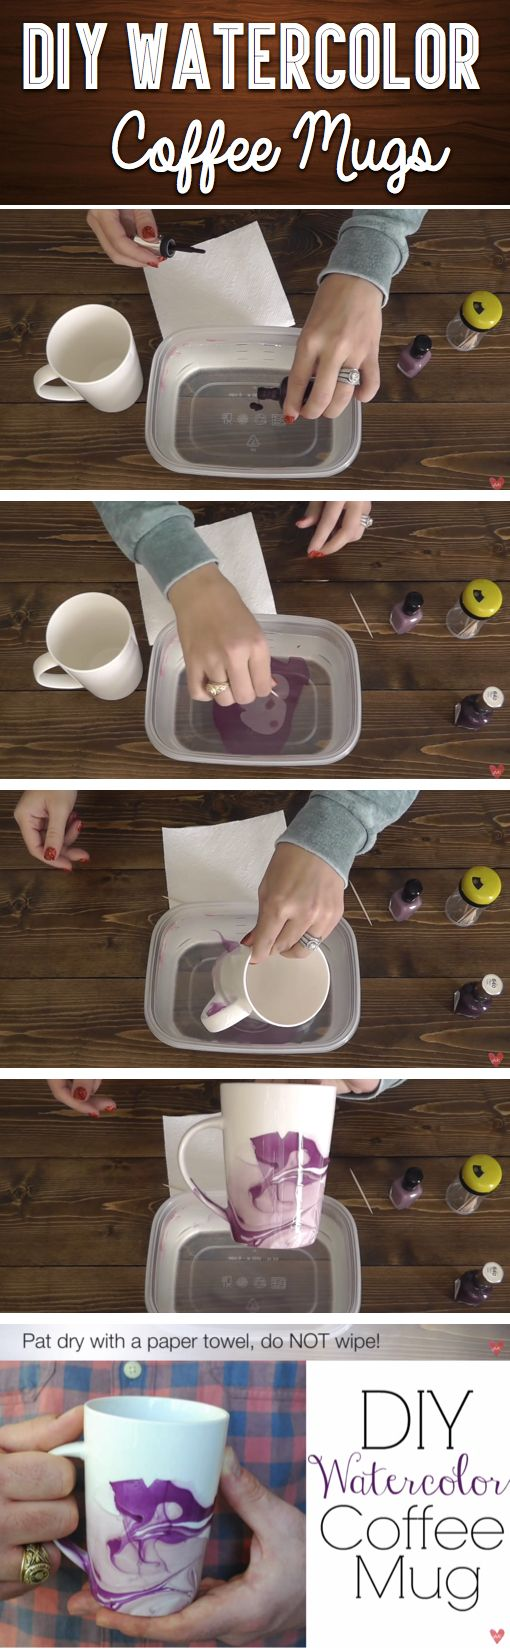 You Will Be Amazed To See What You Can Achieve With A Plain Coffee Cup And Some Nail Polish!